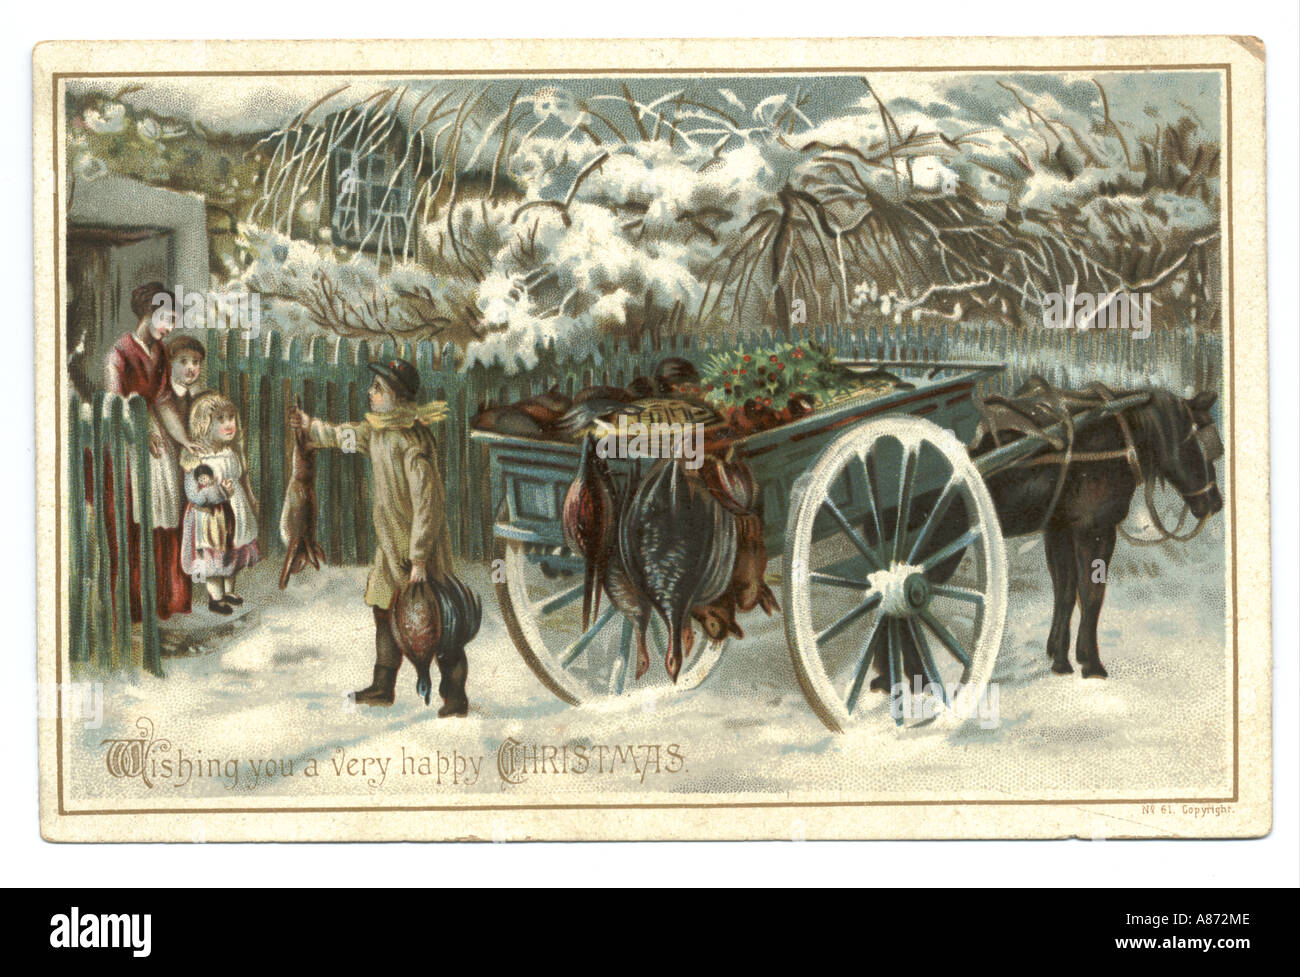 Christmas greetings card received 1877 - Stock Image